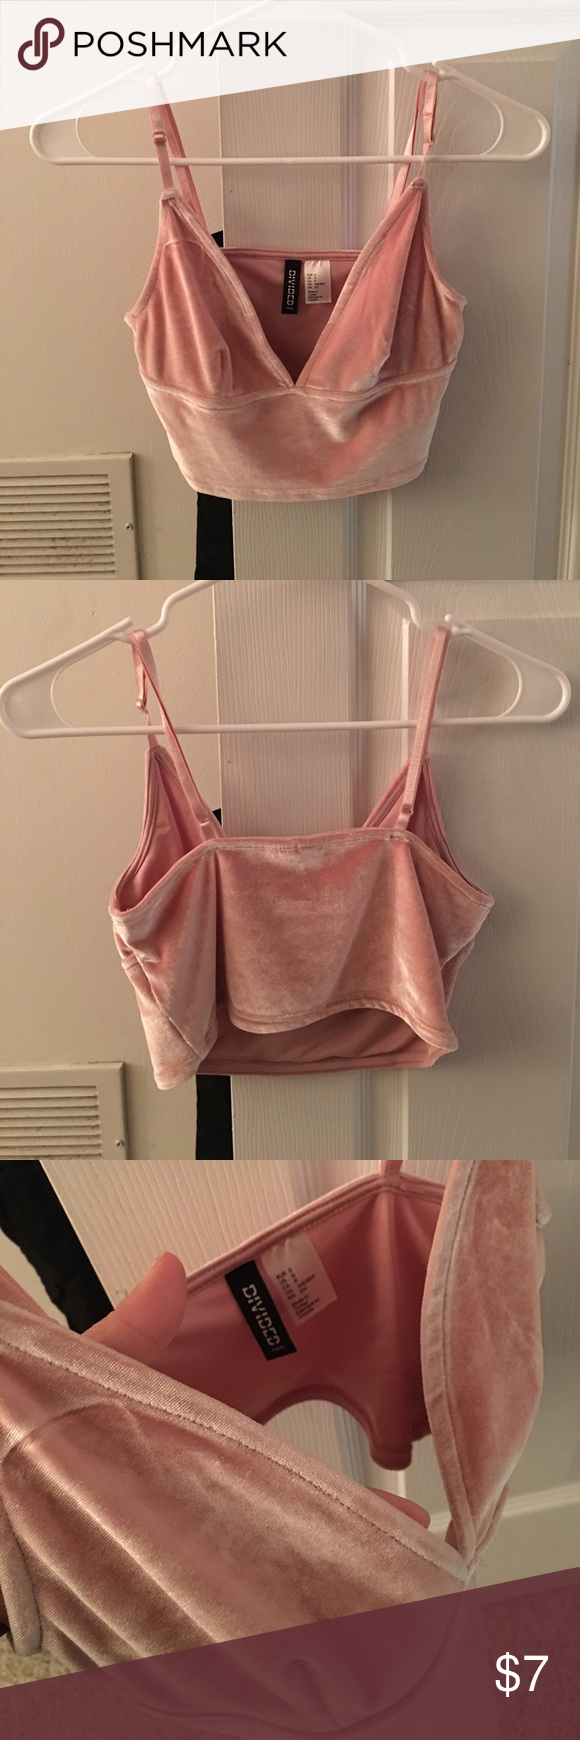 58d3e195274 H&M Velvet Crop Top light pink velvet crop top from h&m that has a deep v  cut and no bra padding- never been worn before! Divided Tops Crop Tops